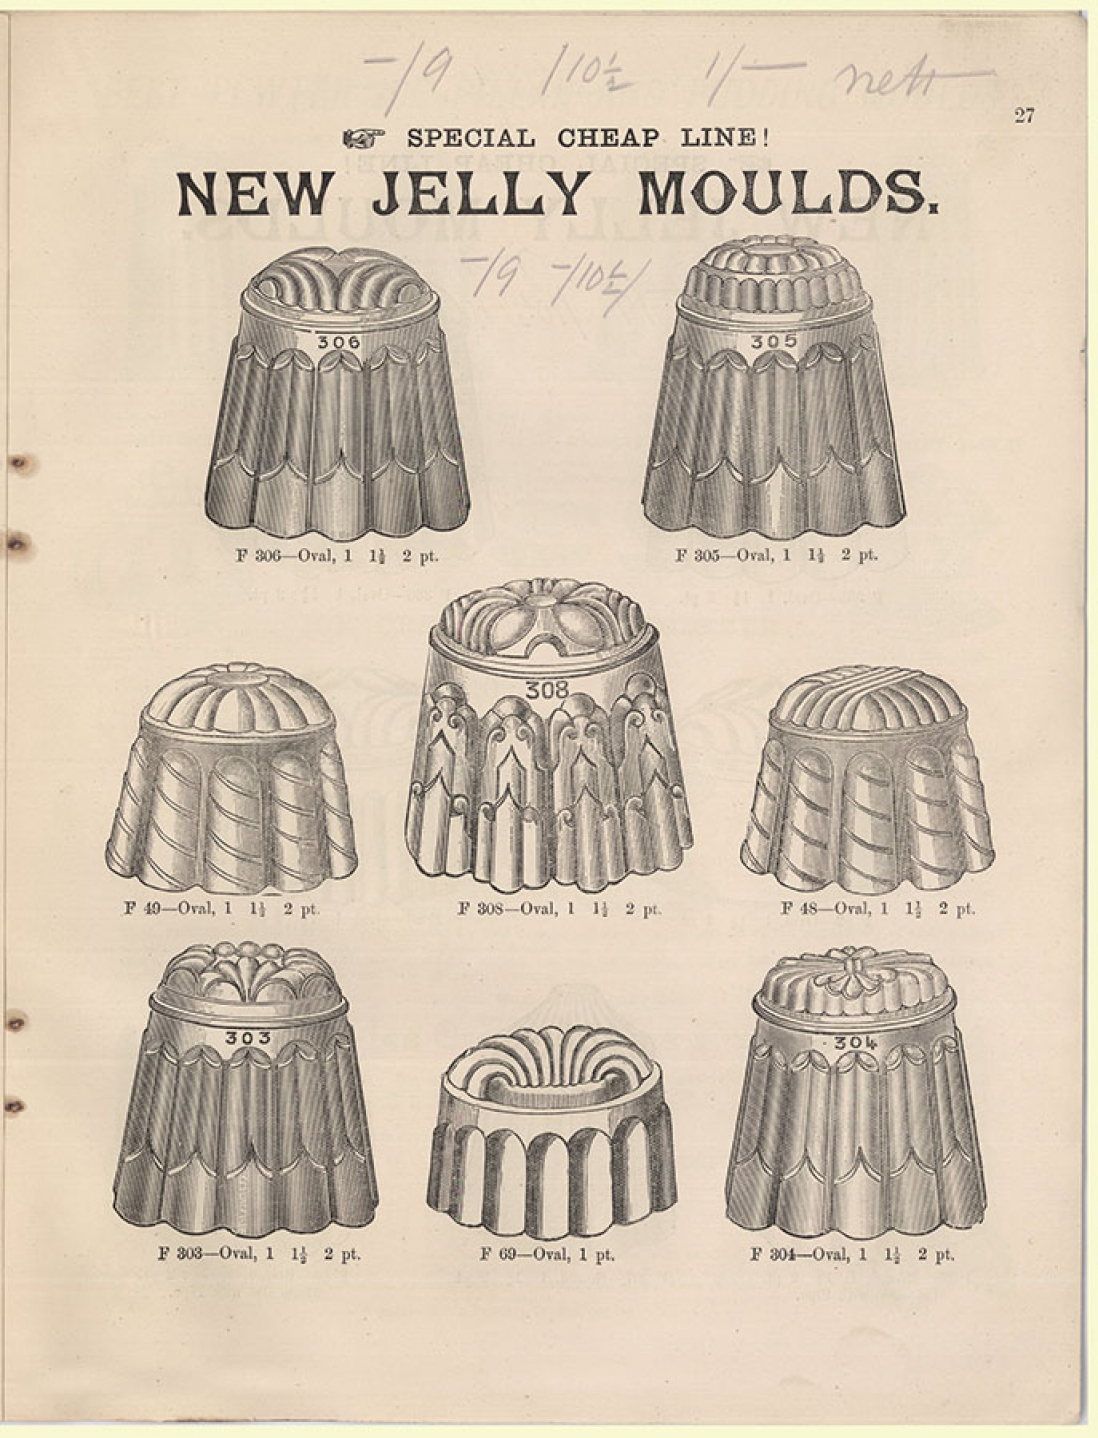 Jelly moulds